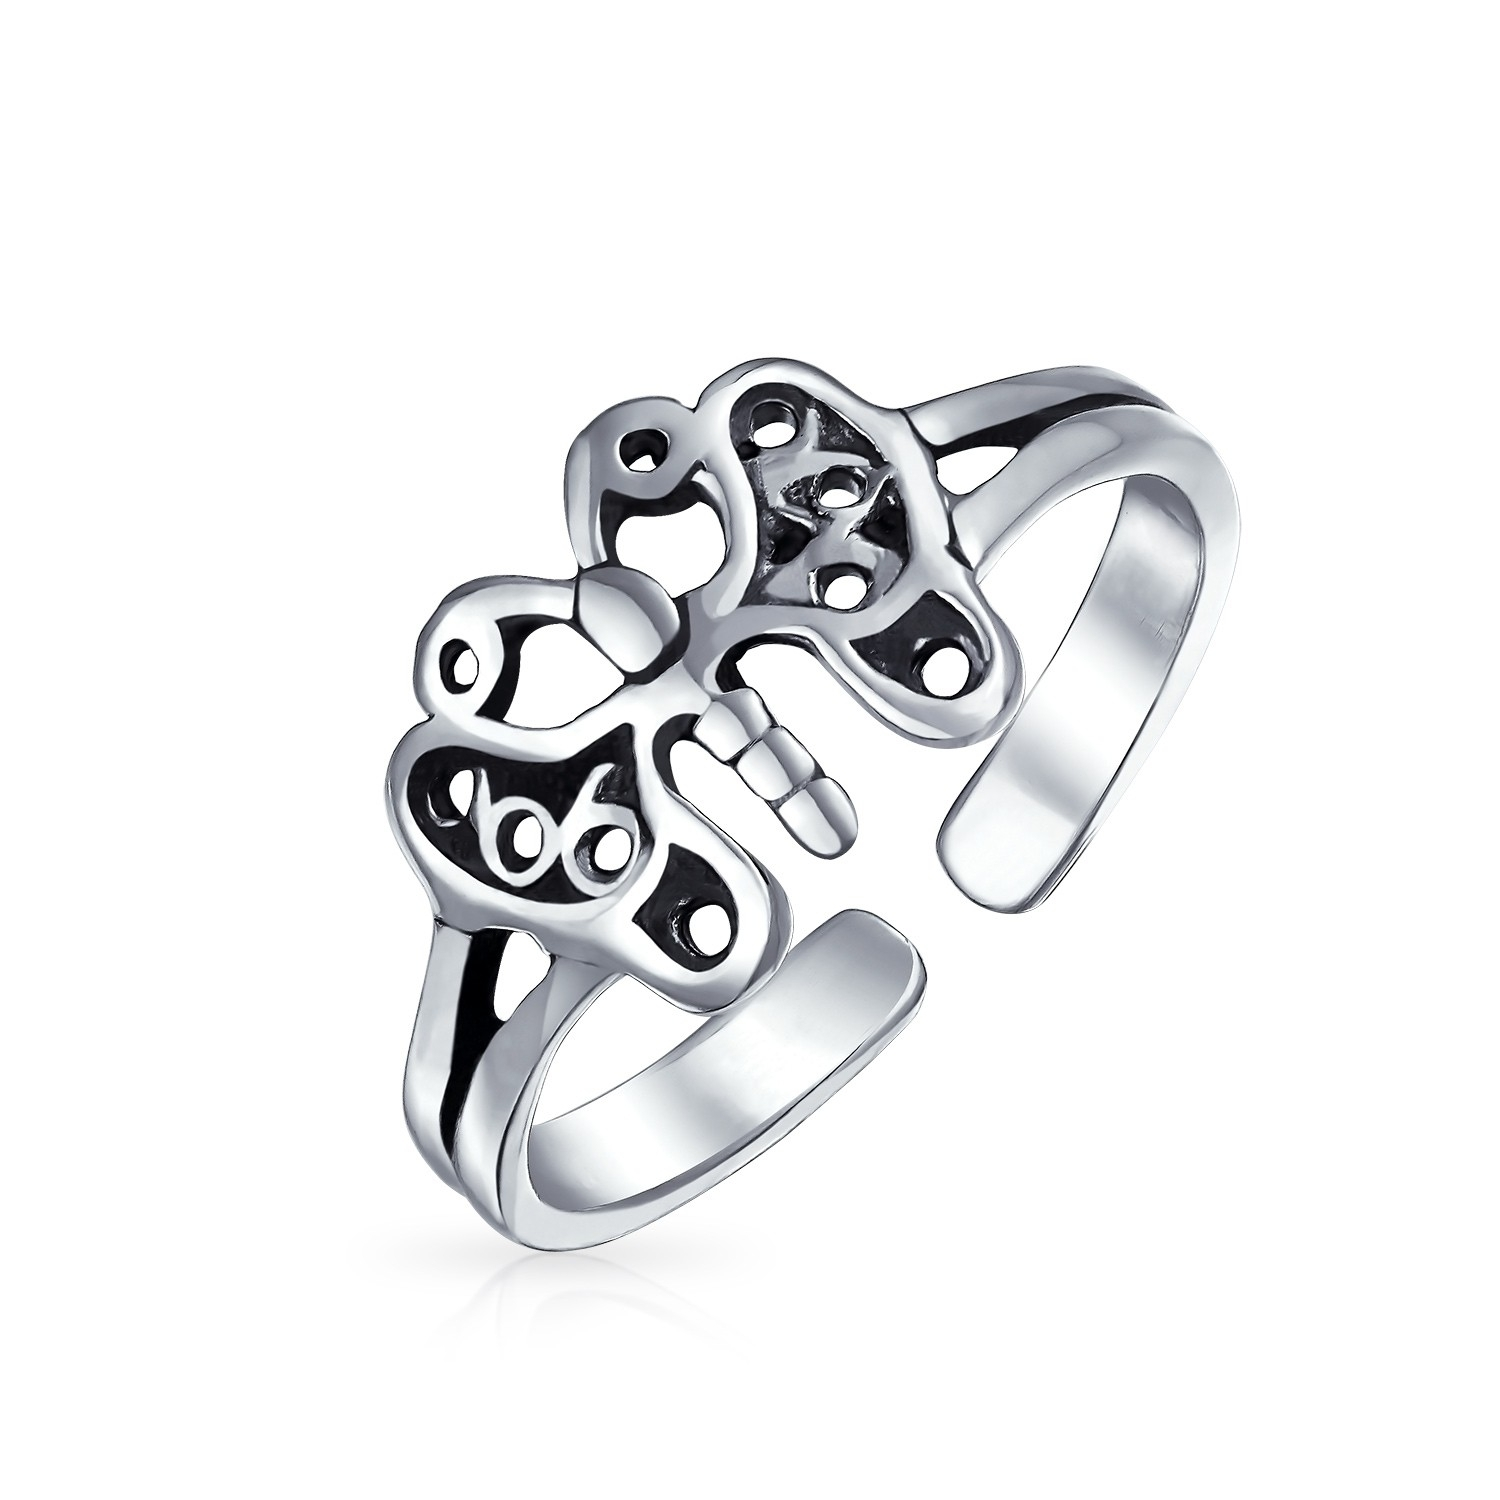 Filigree Butterfly Toe Ring Adjustable Sterling Silver Midi Rings With Recent Infinity Toe Rings (Gallery 3 of 15)